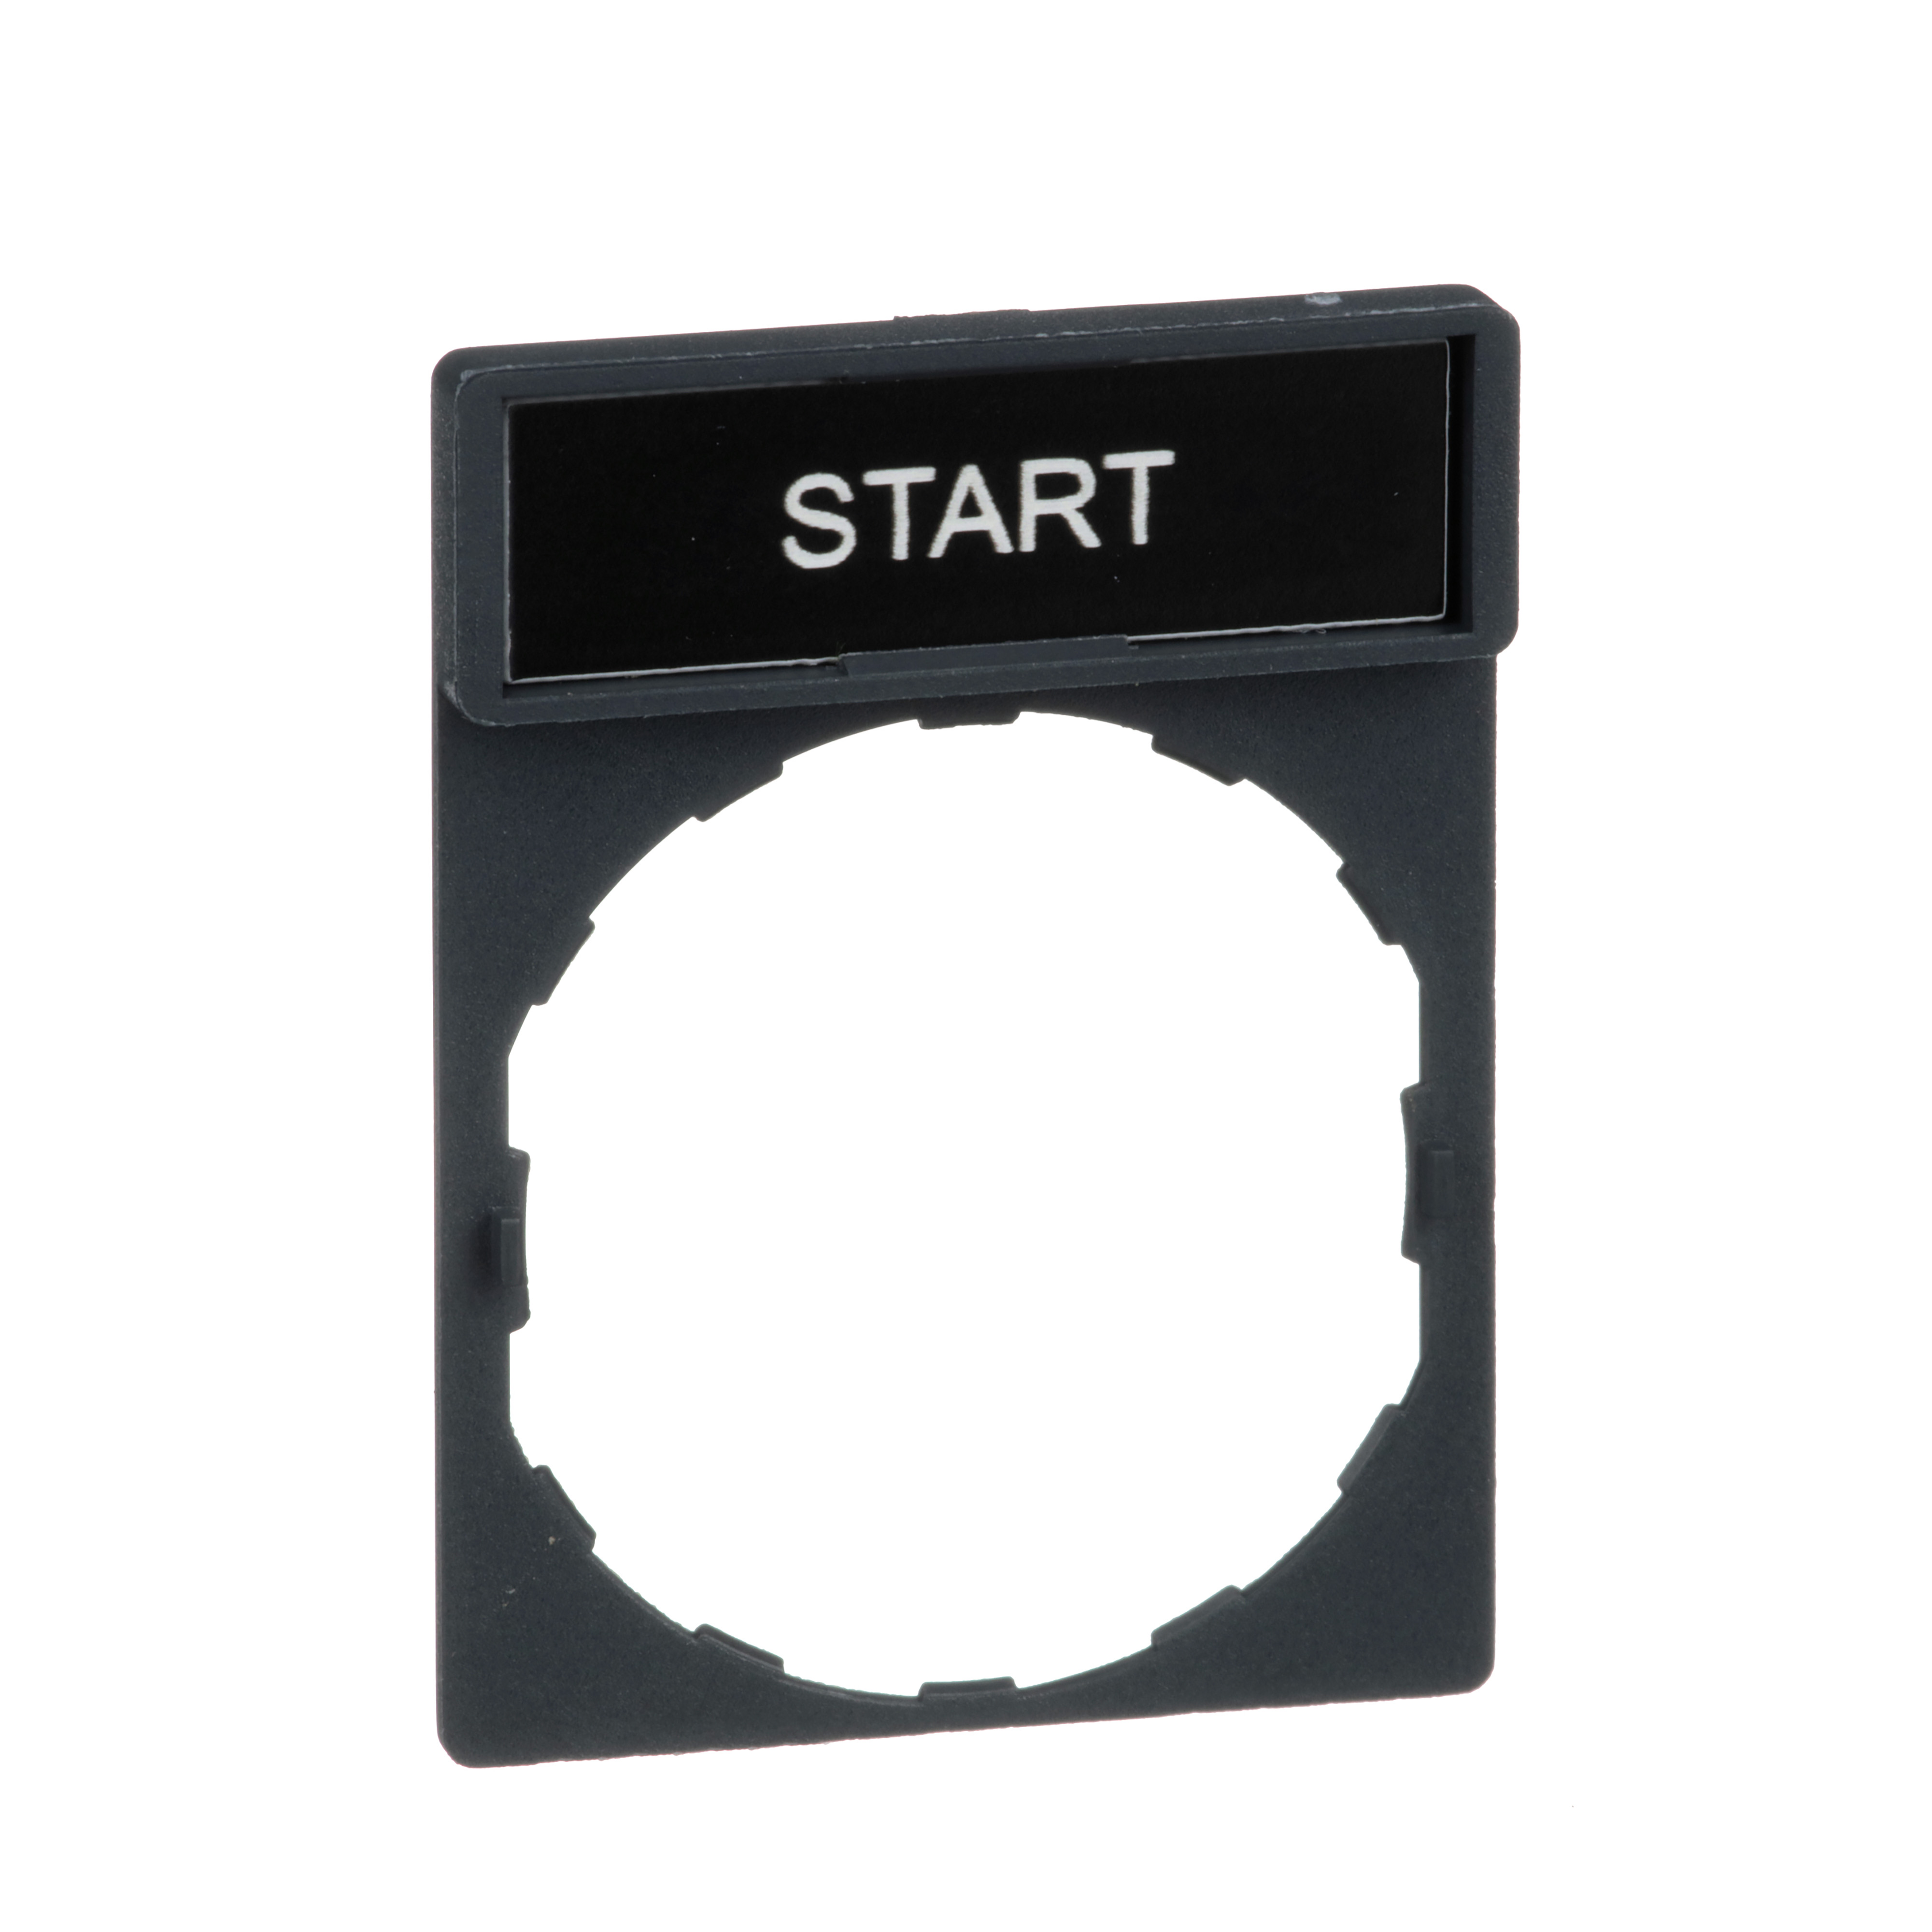 SQUARE D Harmony, 22mm Push Button, legend holder 30 x 40 mm, with legend 8 x 27 mm, marked START